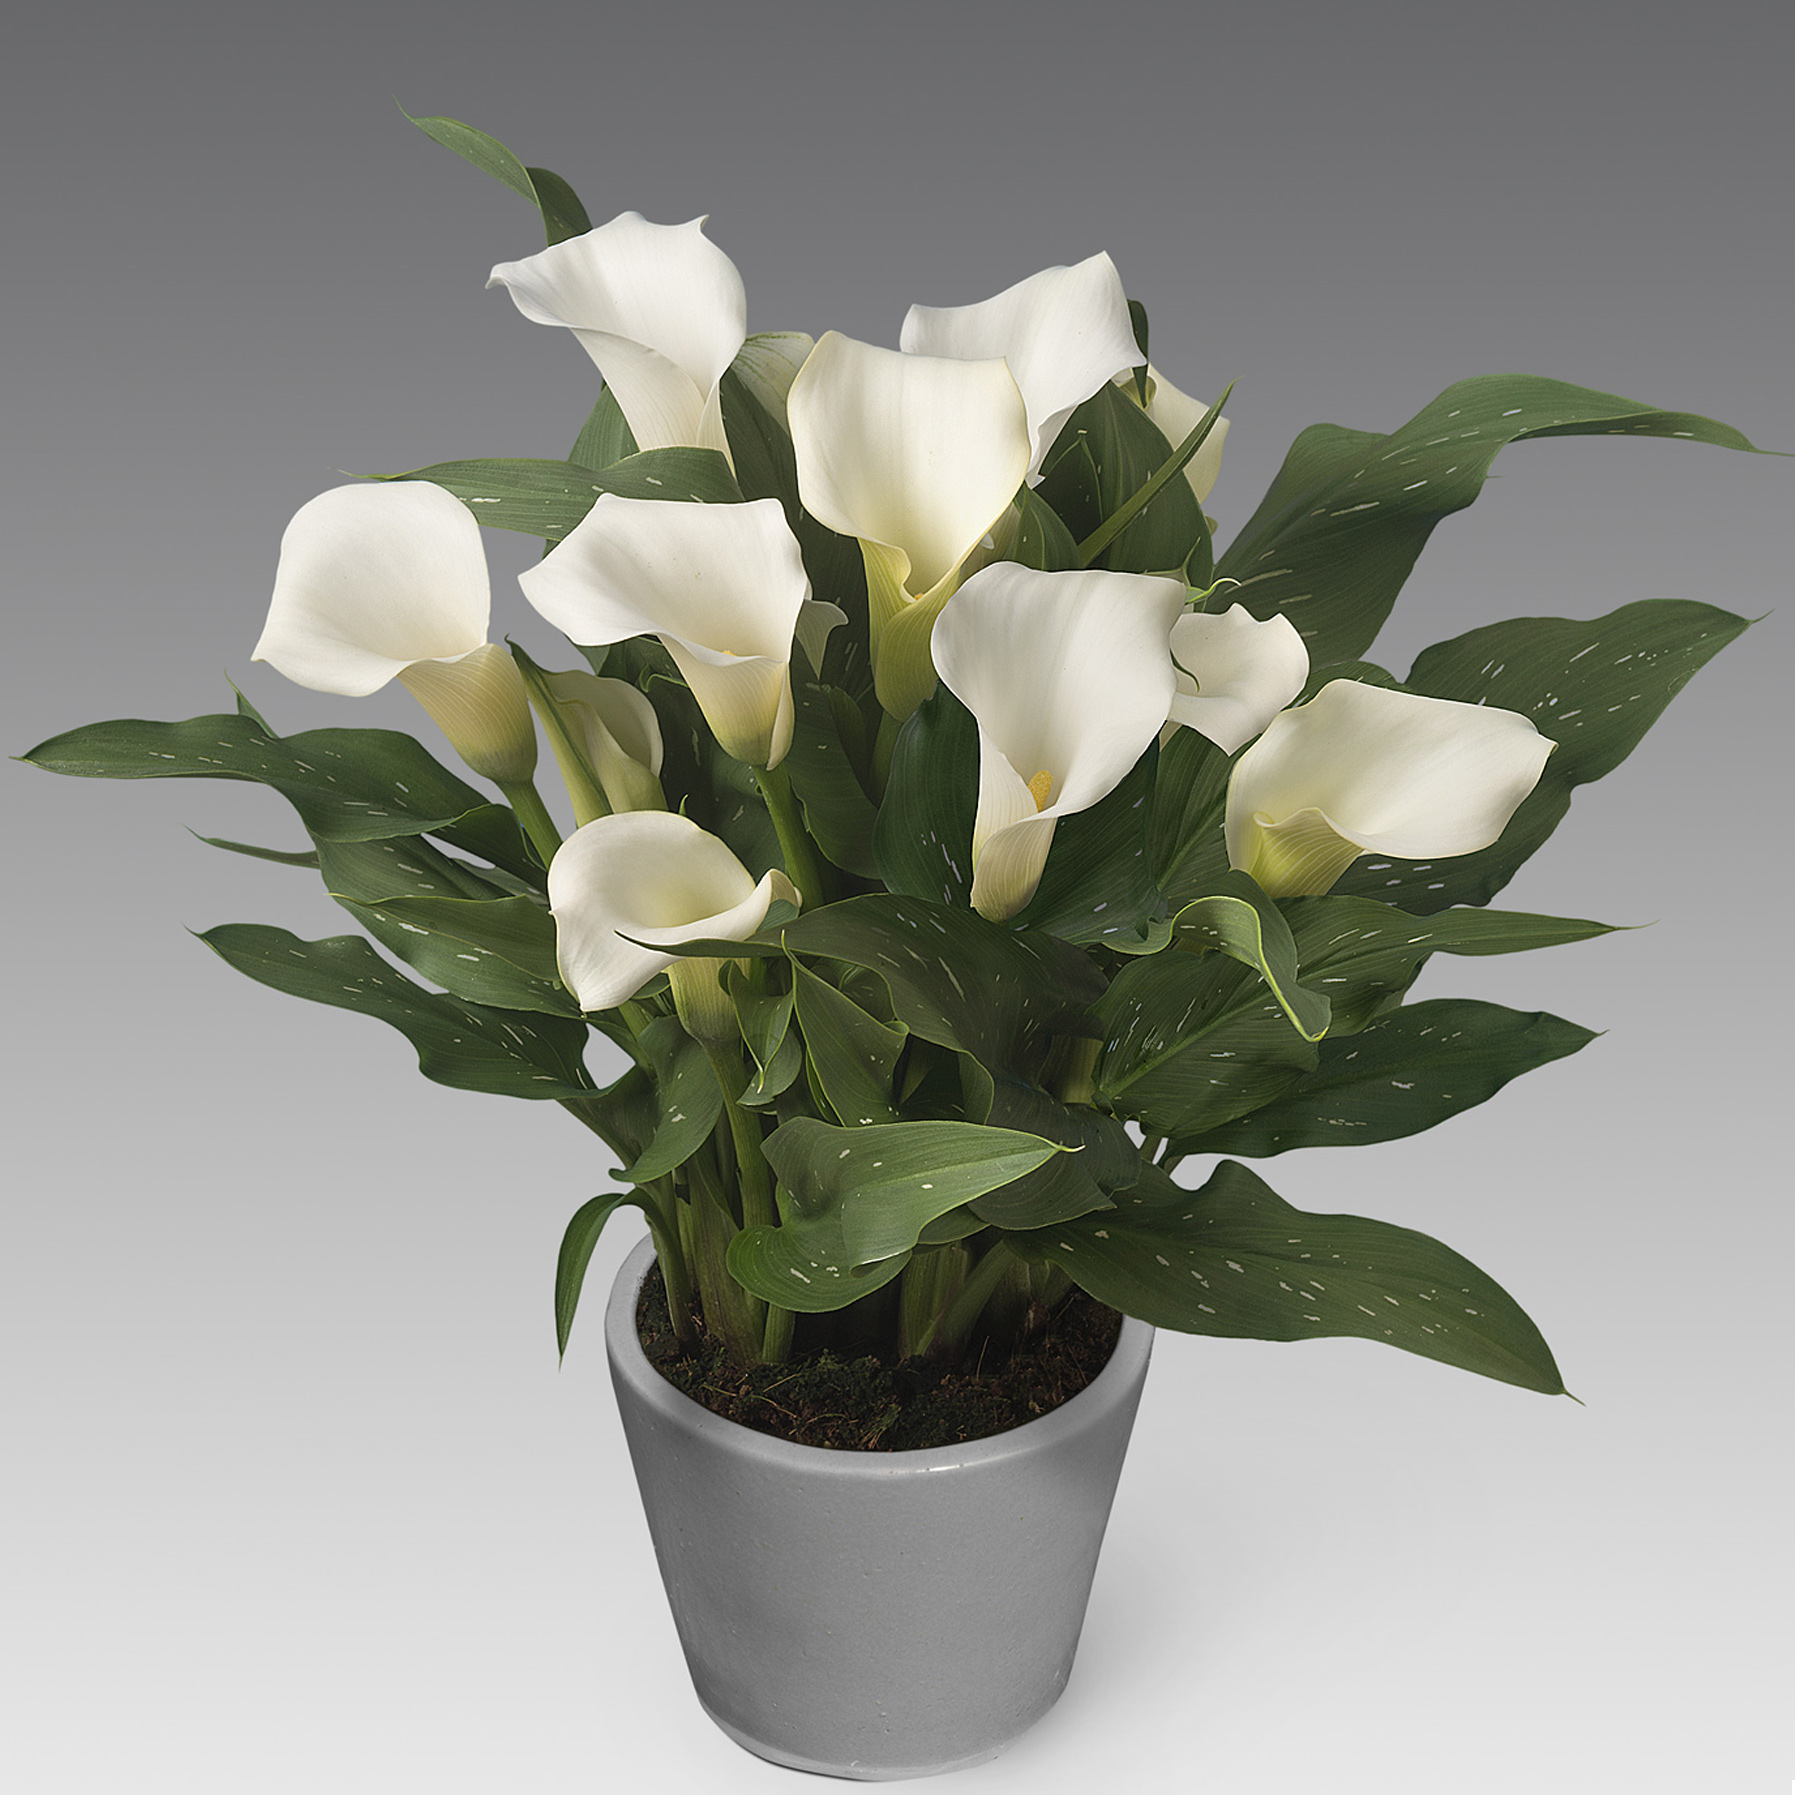 HR_Zantedeschia_Captain_Fresco_03862a.jpg